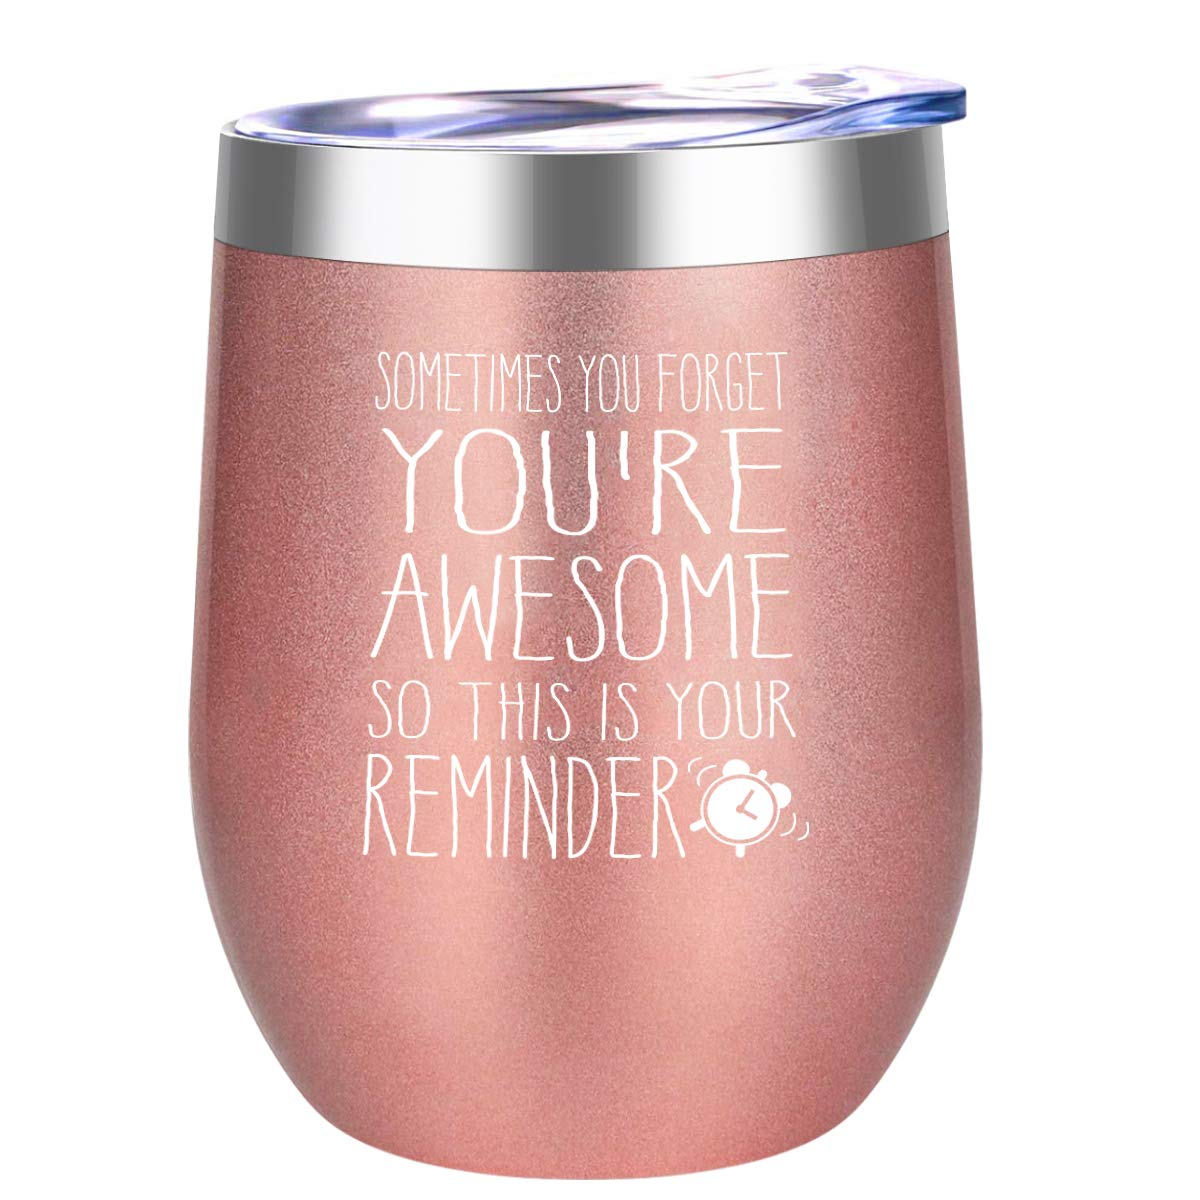 DOERDO You are Awesome Wine Tumbler-Funny Birthday Wine Gifts Ideas for Women, Gifts for Sister, Best Friends, Employee, Coworker, Appreciation Gift,-Wine Tumbler Cup with Lid(12oz, Rose gold)